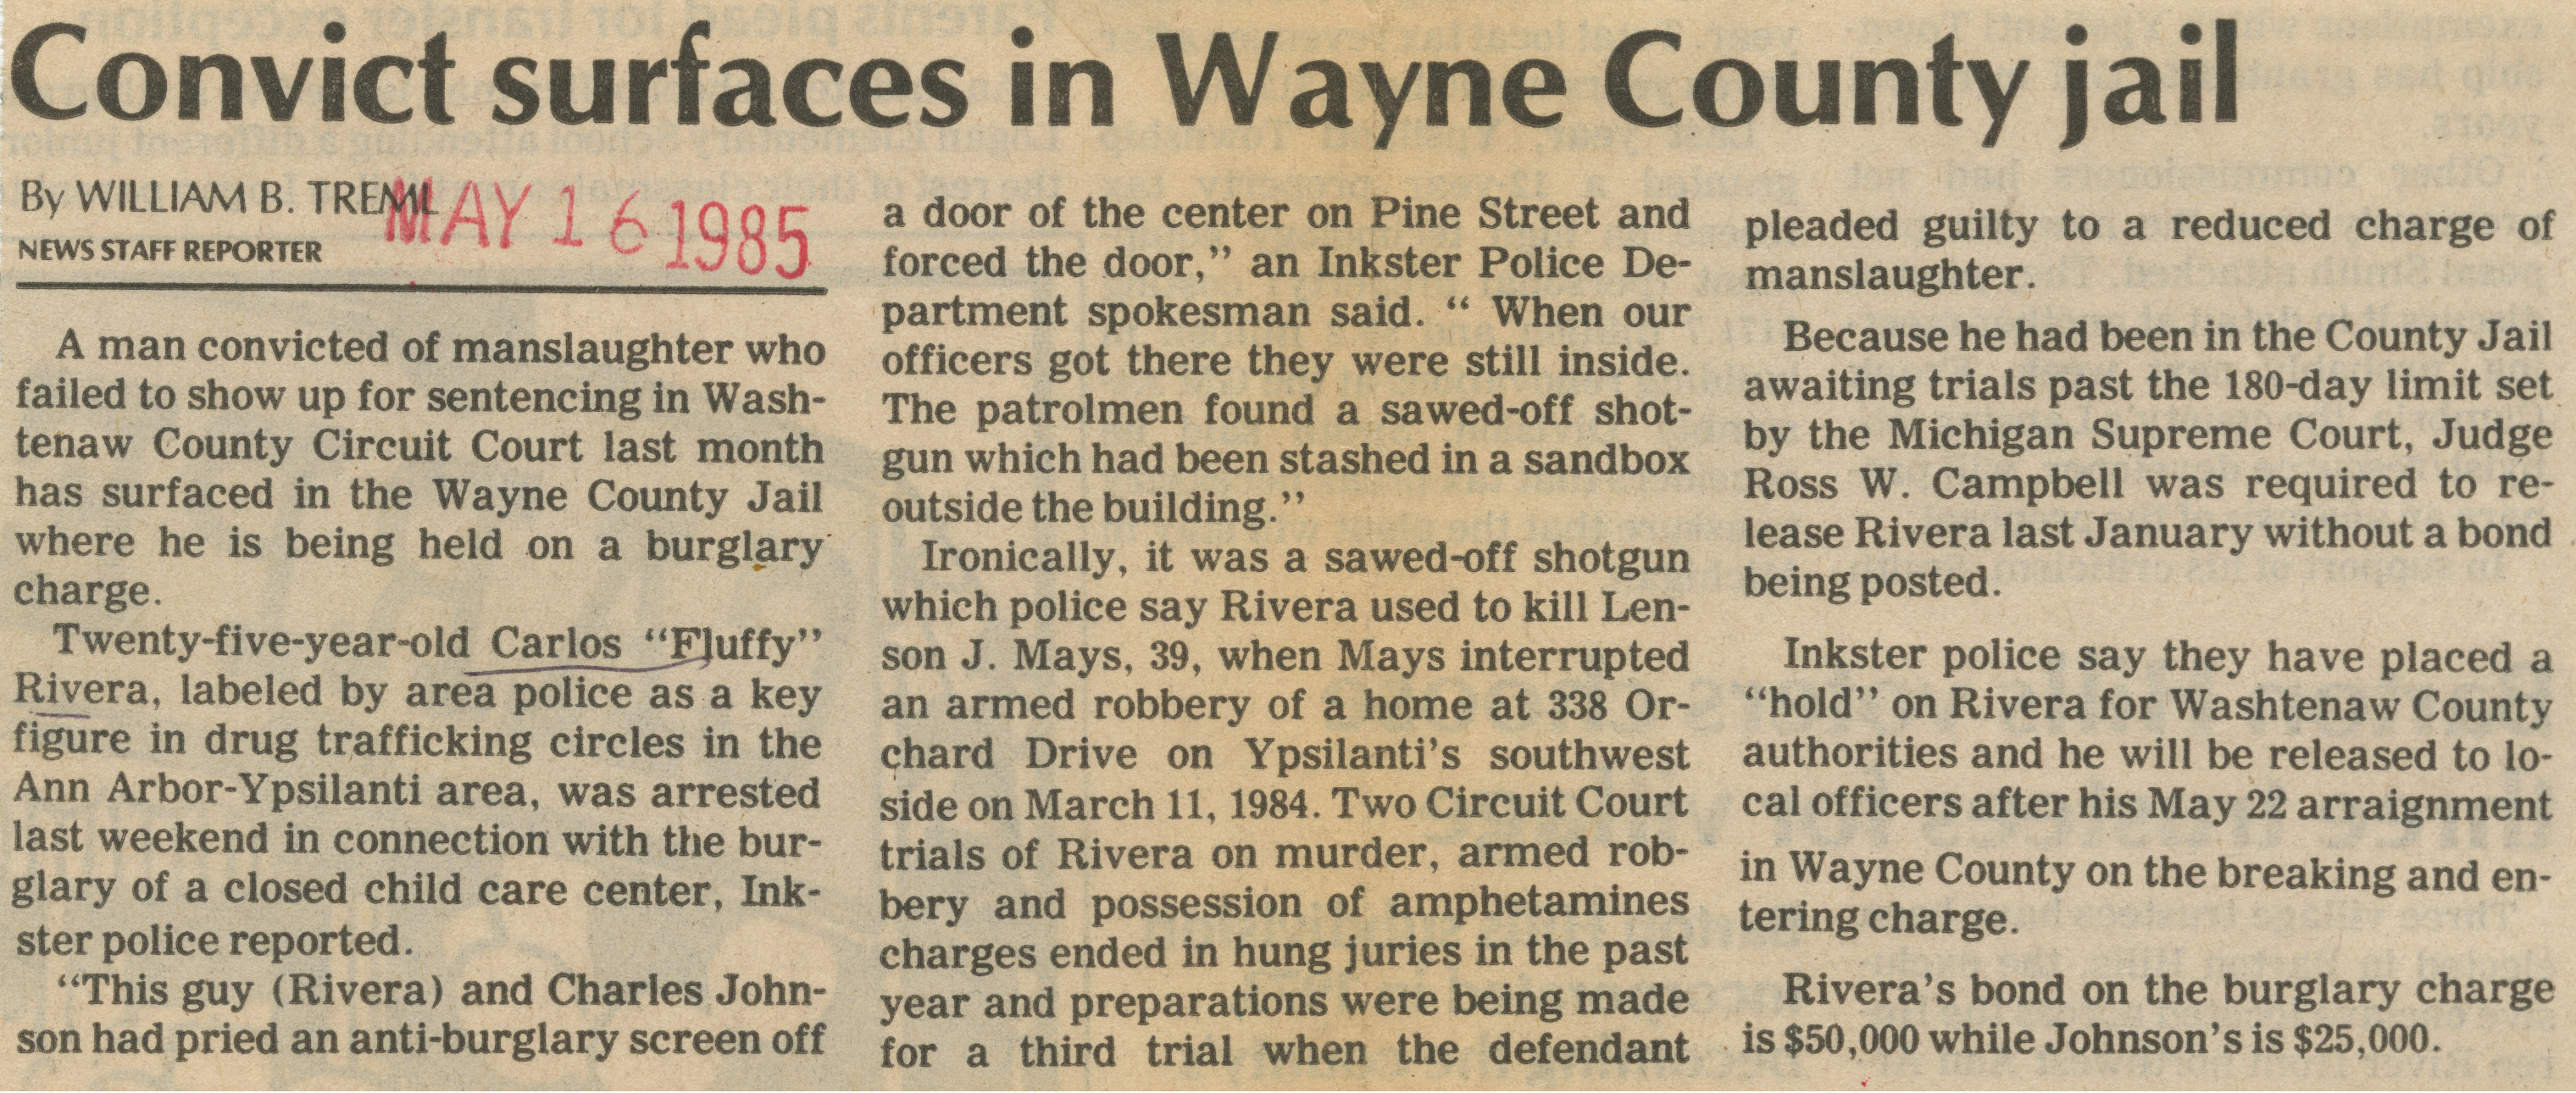 Convict surfaces in Wayne County jail | Ann Arbor District Library